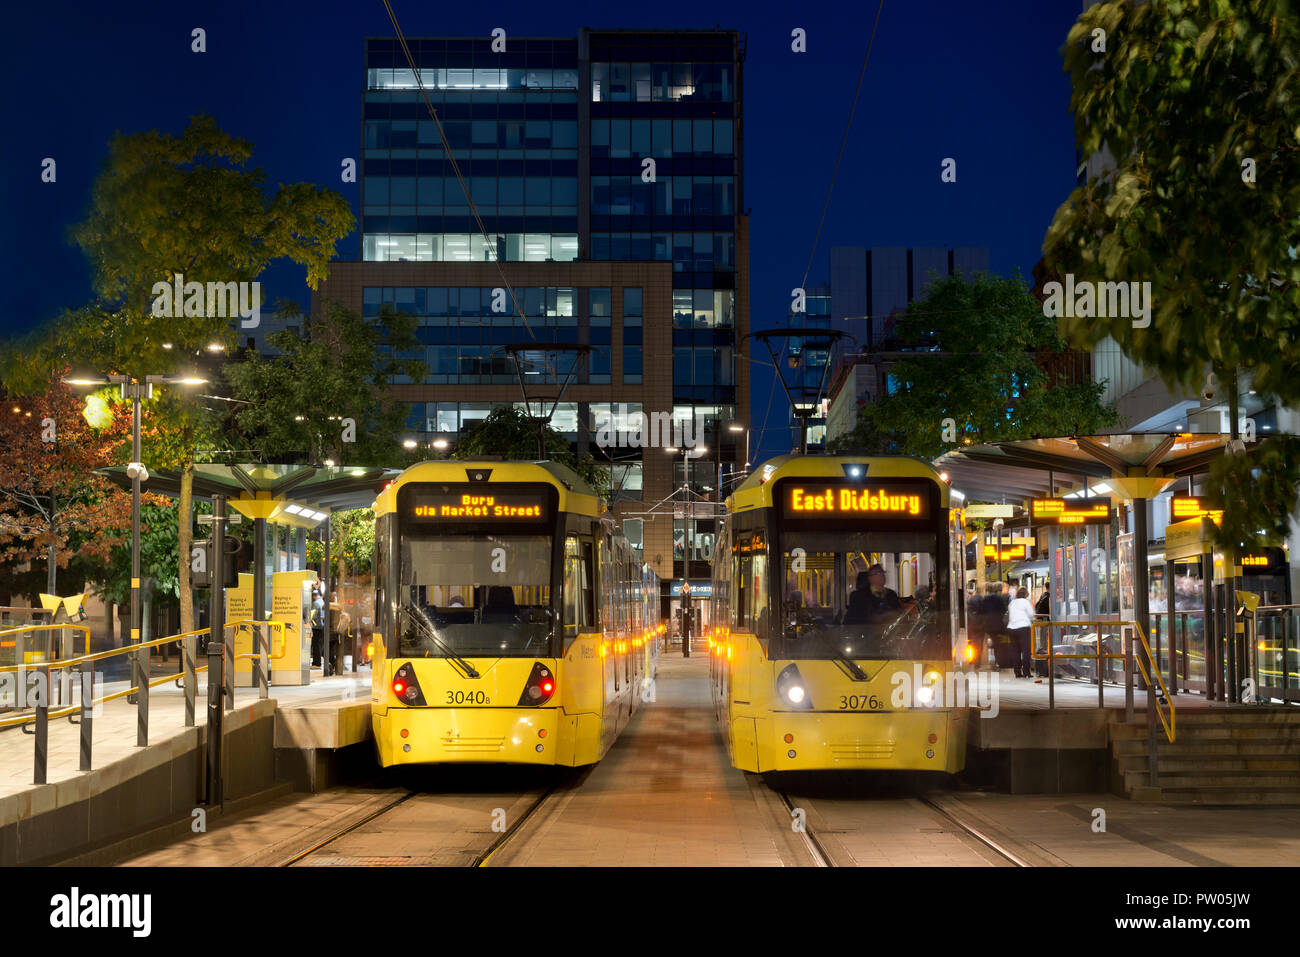 Two Metrolink trams arrive at St Peter's square stop at night in Manchester City Centre, UK. Stock Photo